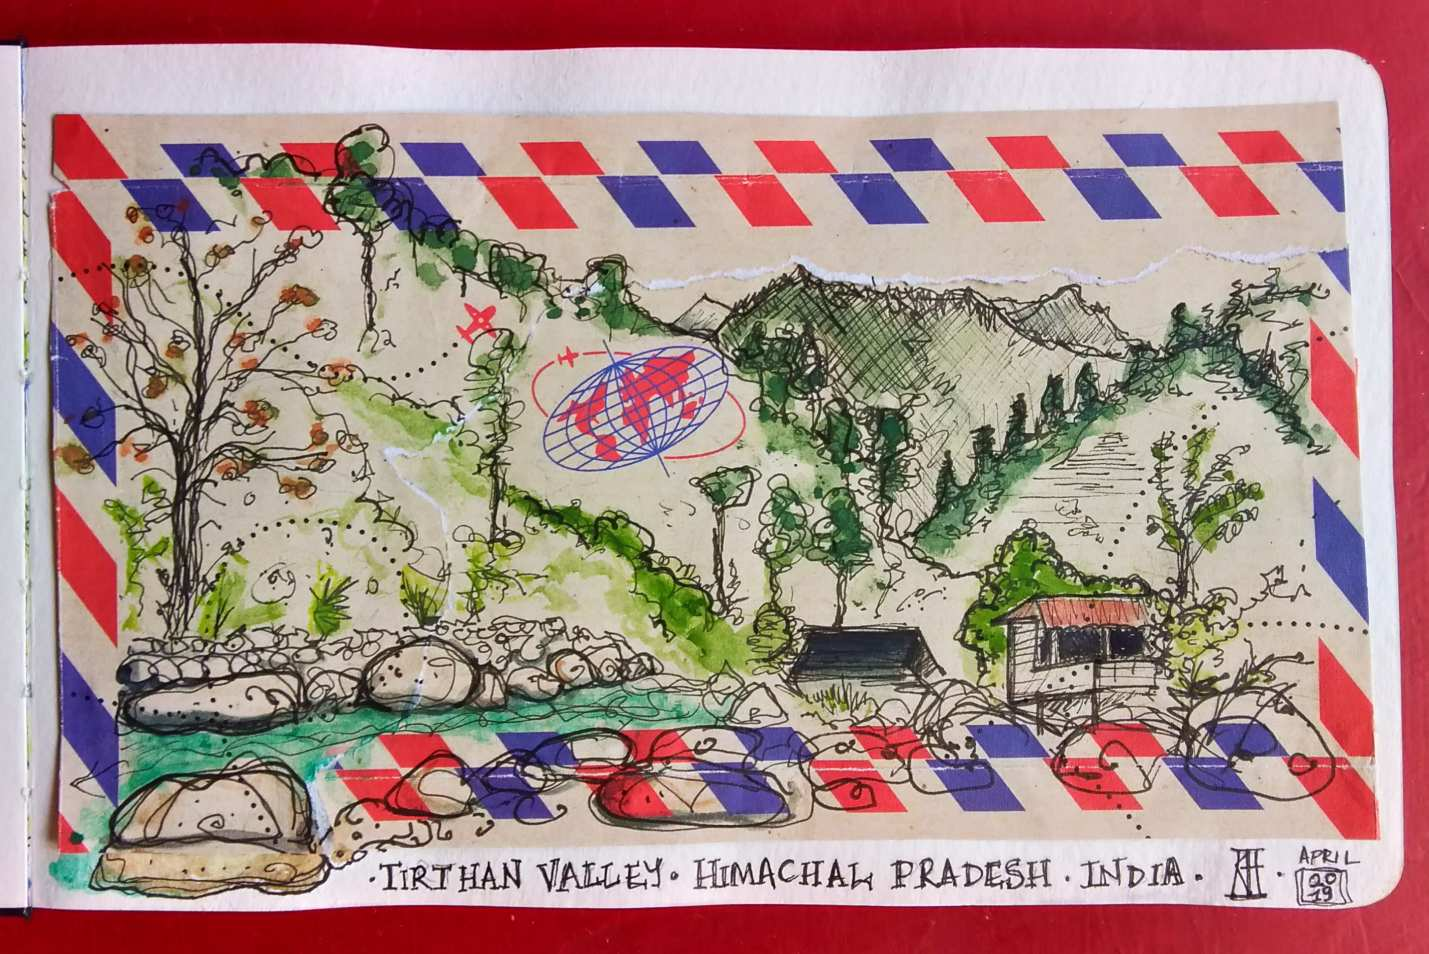 tirthan valley, himachal pradesh, india, collage, airmail, pen and wash, watercolour, landscape, travel blog, travel illustration, river, mountains, rocks, watercolor, sketchbook